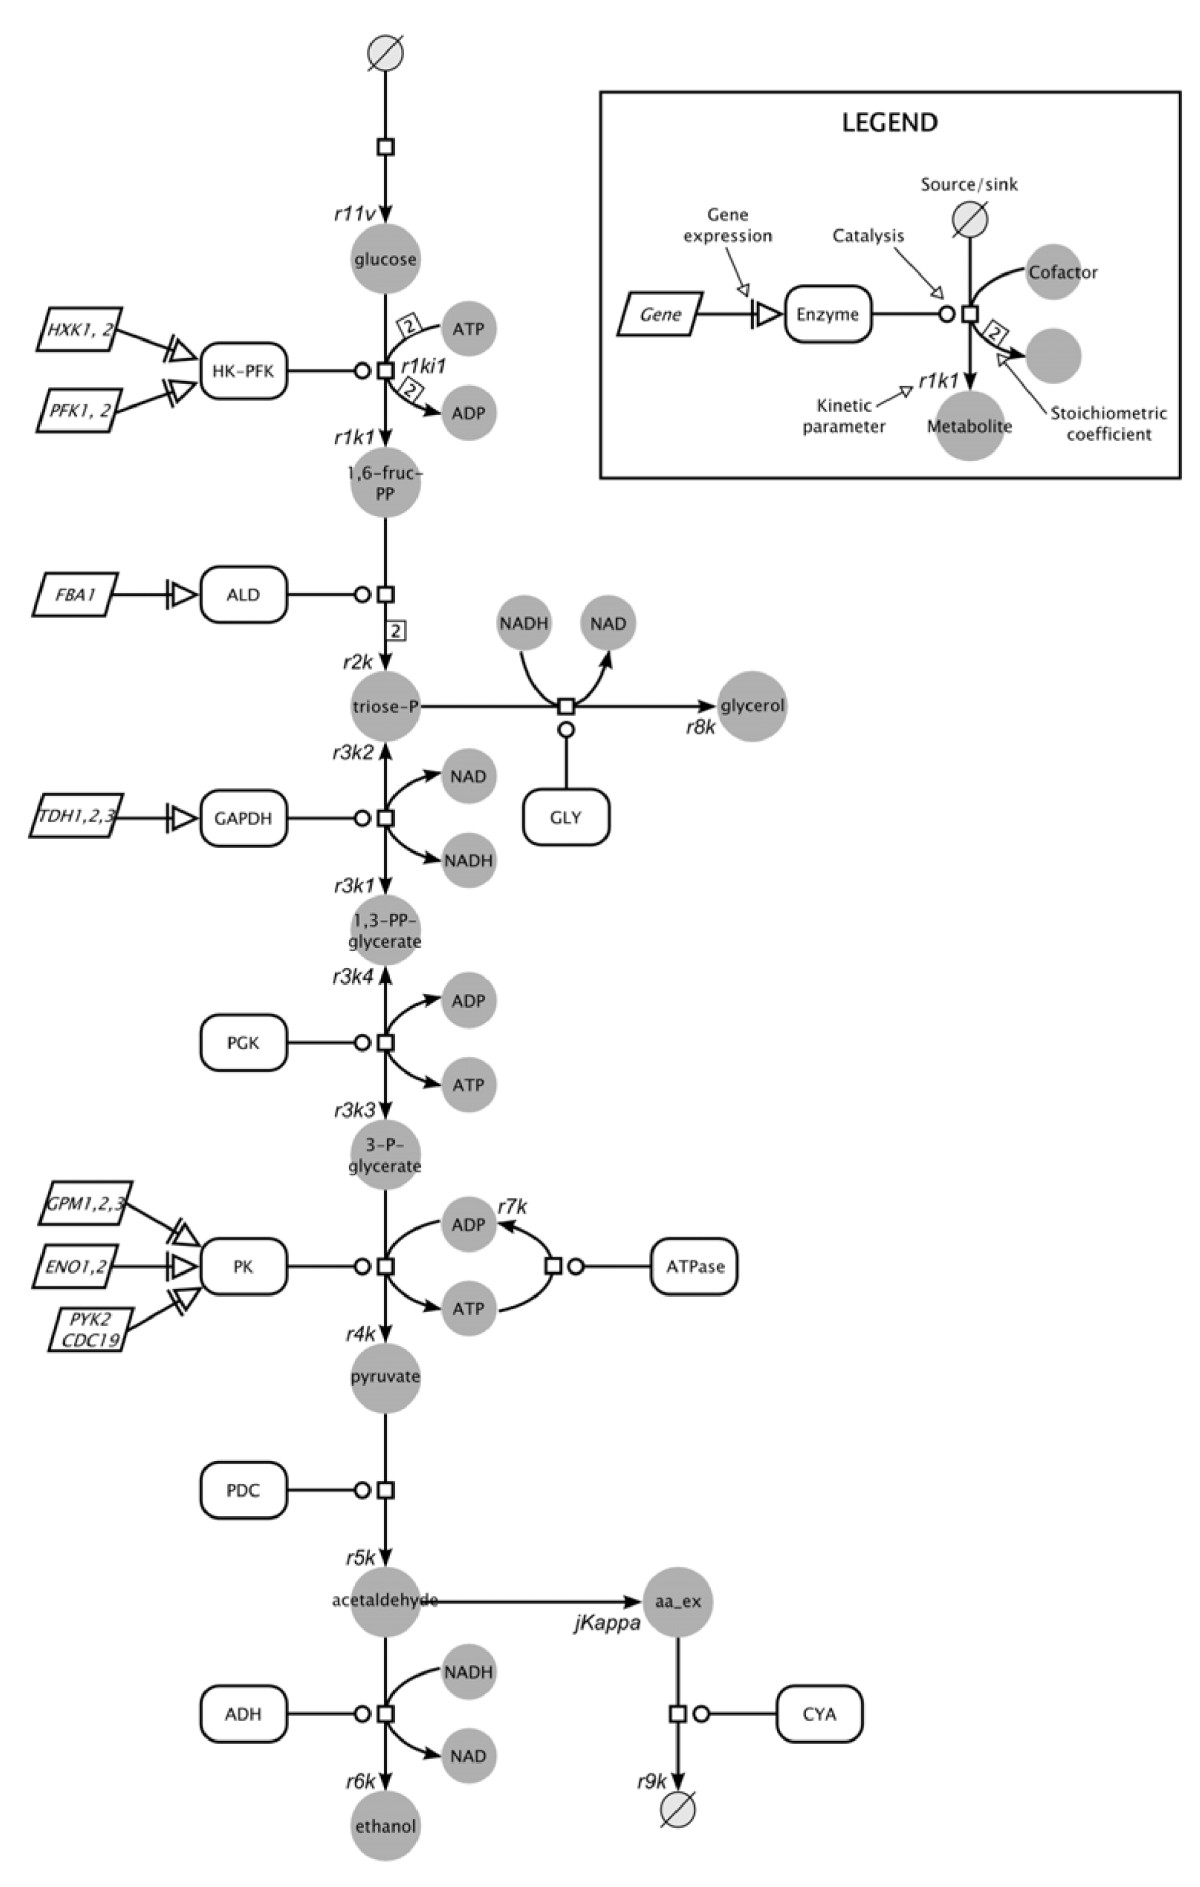 https://static-content.springer.com/image/art%3A10.1186%2F1752-0509-6-108/MediaObjects/12918_2012_Article_964_Fig1_HTML.jpg